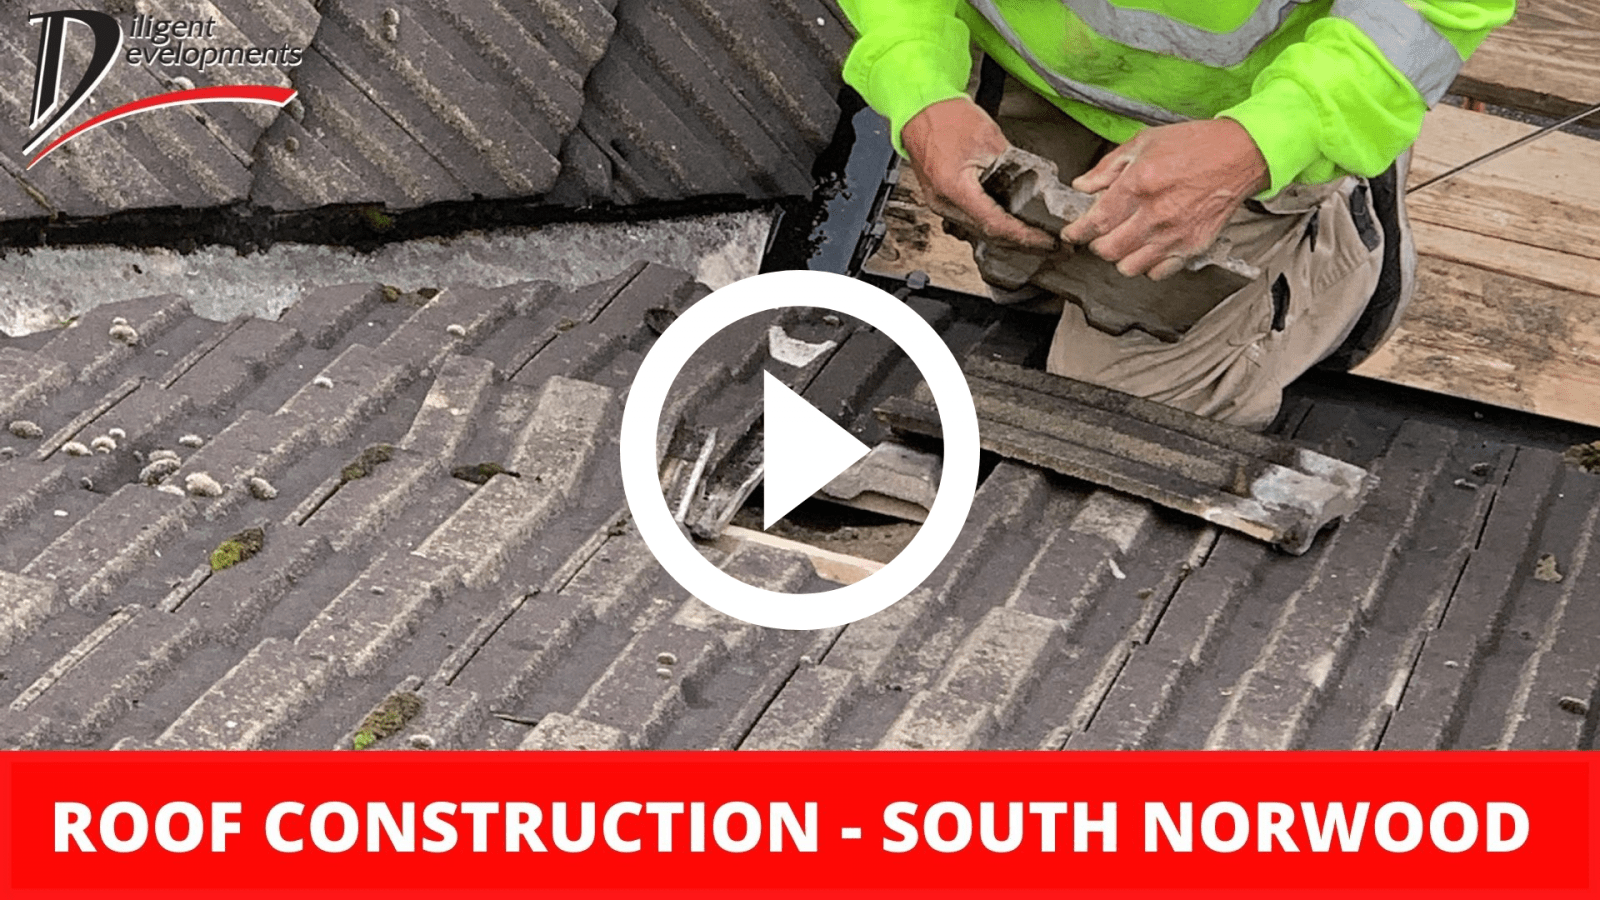 Roof Construction - South Norwood